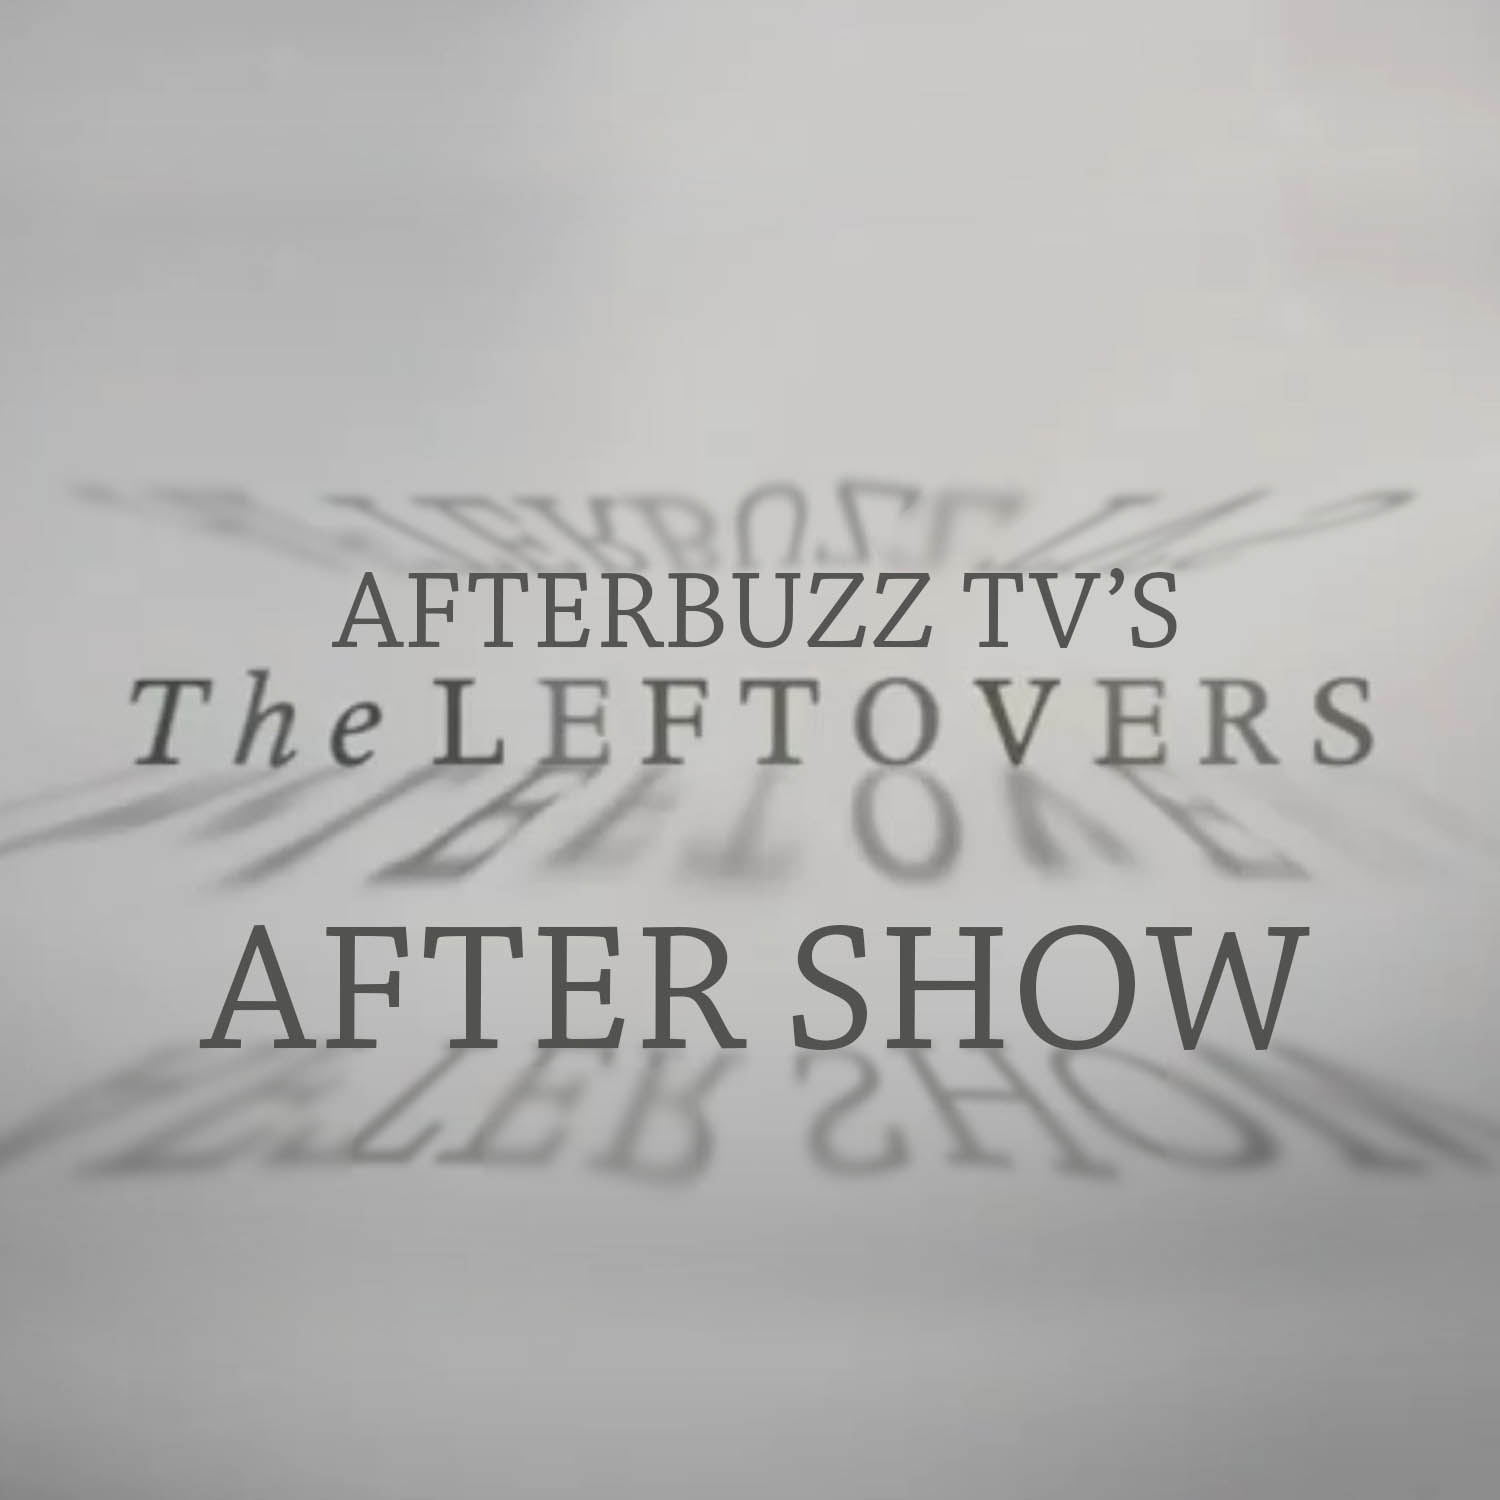 The Leftovers After Show